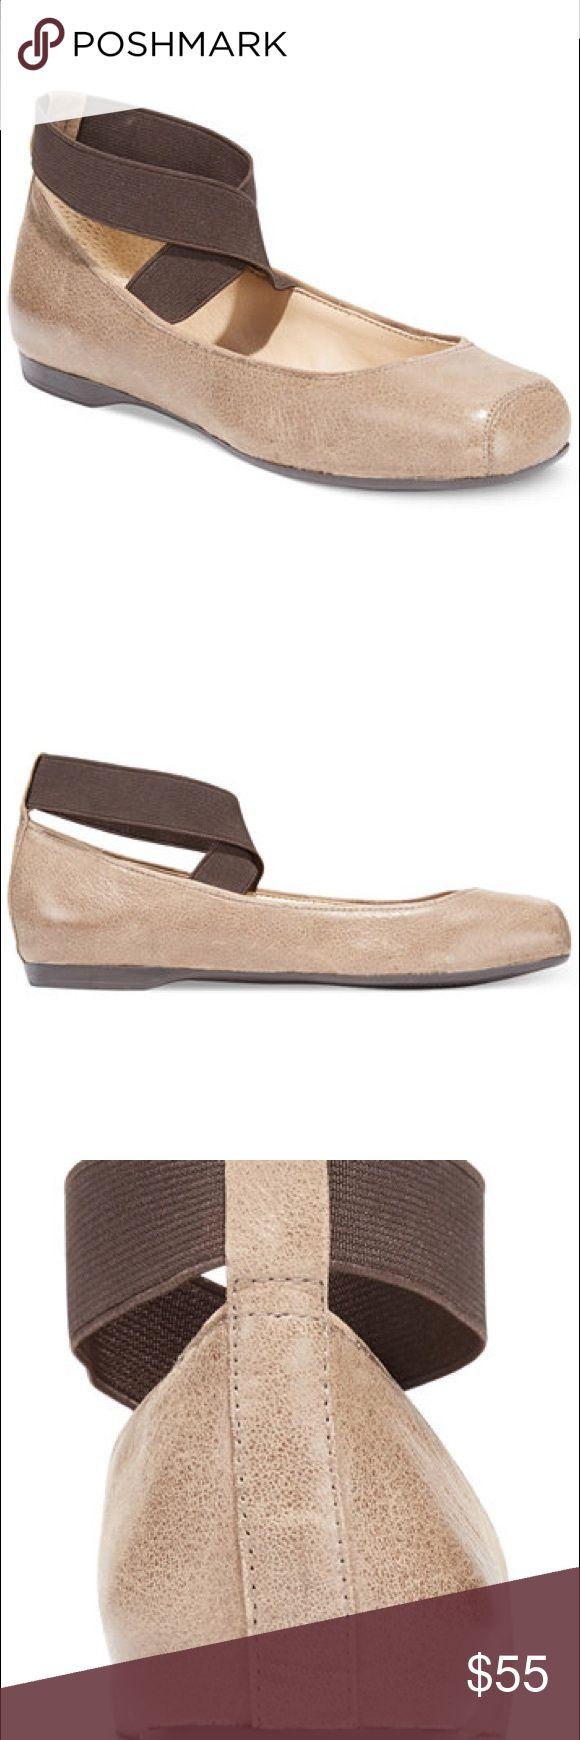 Jessica Simpson Ballet Flats Jessica Simpson Leather Ballet Flats in coffee color.  New in box.  Actual color is slightly darker than the stock photos. Jessica Simpson Shoes Flats & Loafers